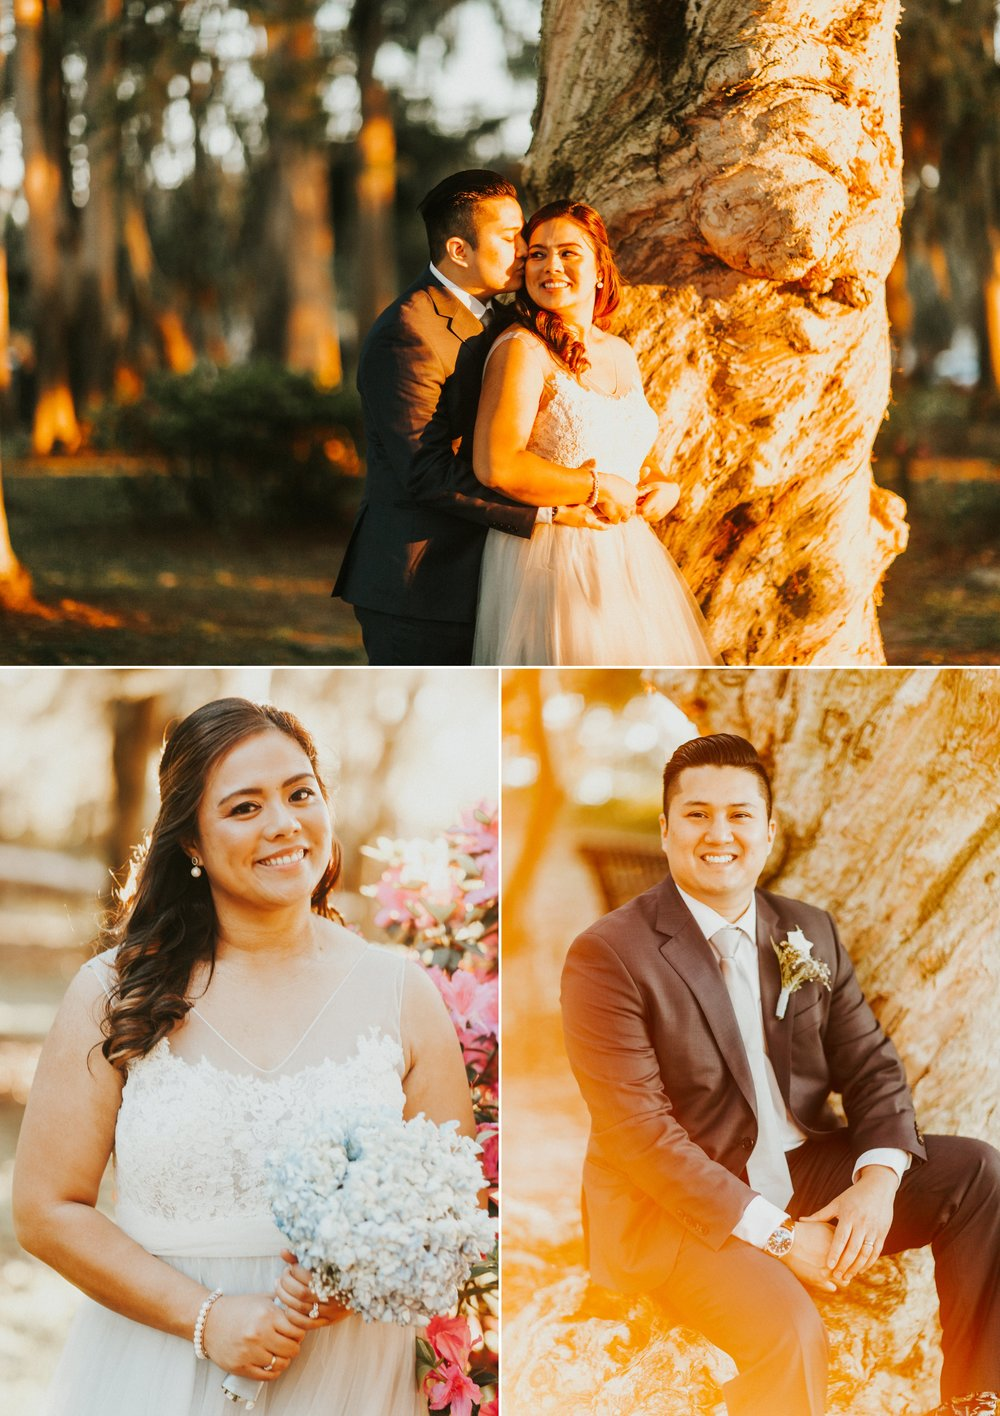 Romantic Leu Gardens Wedding Pictures - Winter Park Wedding Photographer Shaina DeCiryan- Effie+Phillip12.jpg